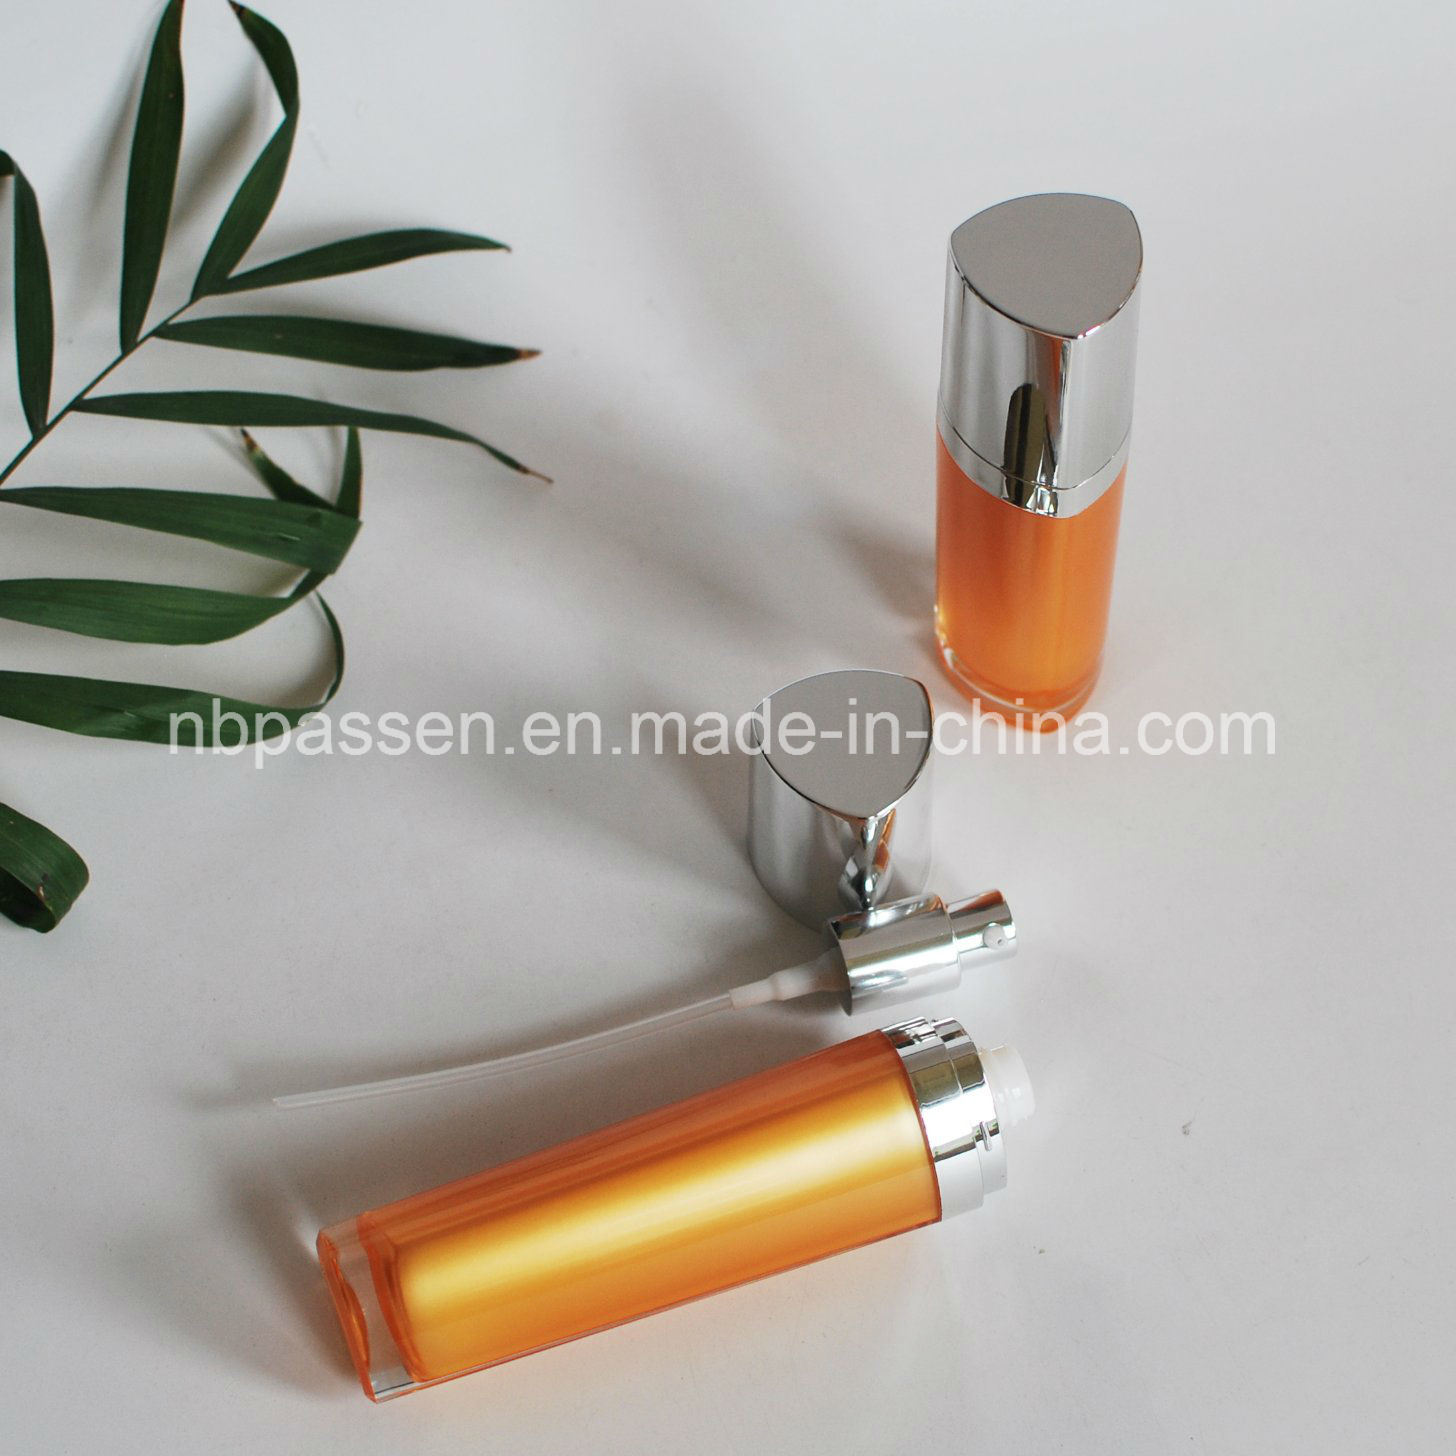 15/50ml Orange Acrylic Cosmetic Bottle with Lotion Pump (PPC-NEW-095)